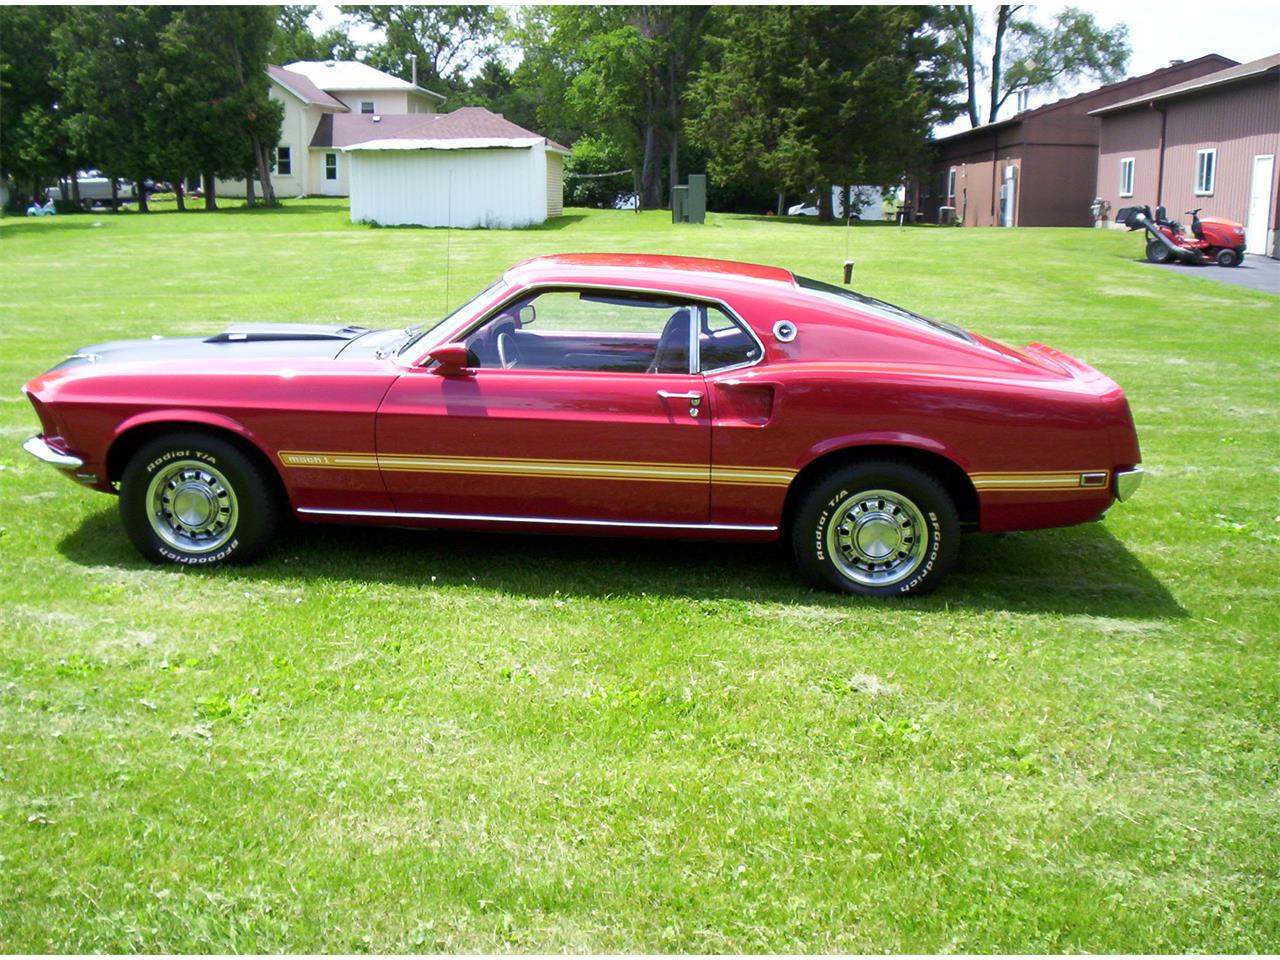 1969 Ford Mustang Mach 1 (CC-1344343) for sale in Sun Prairie, Wisconsin